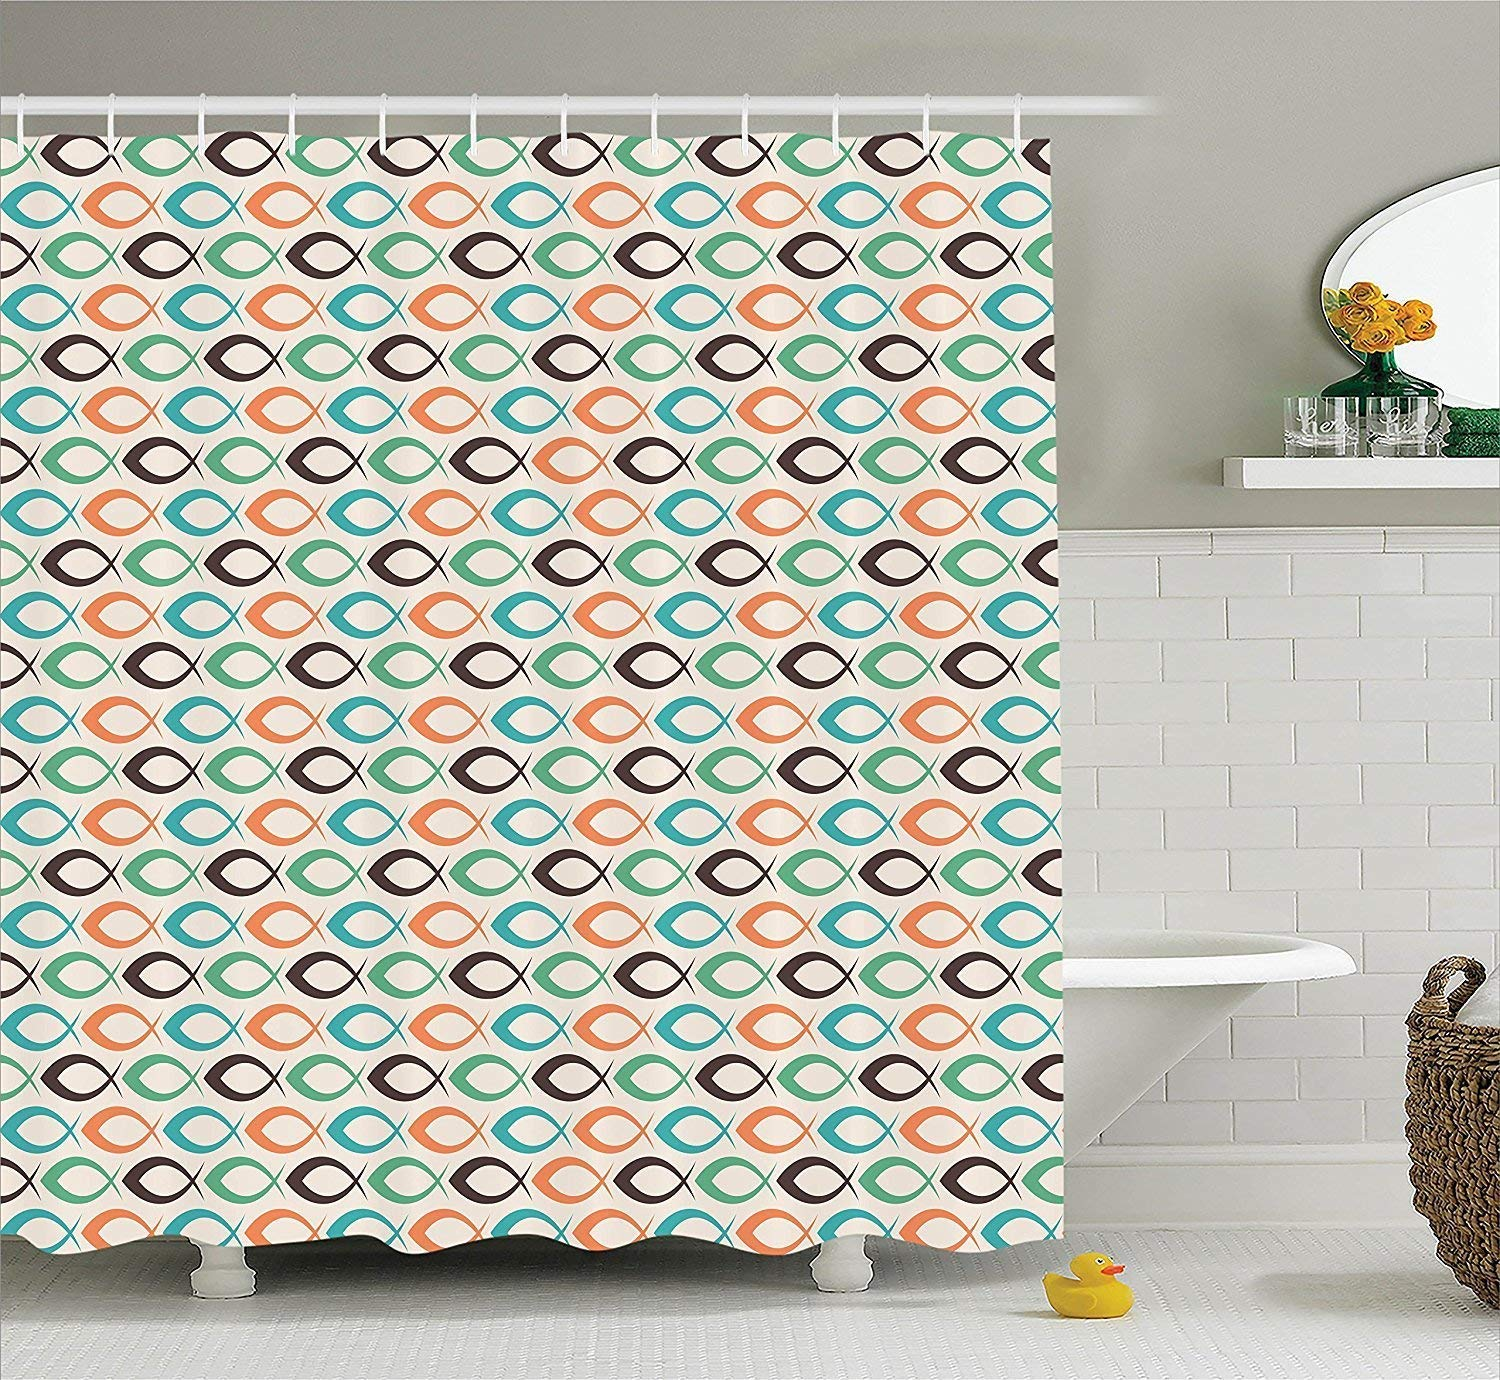 Diversión sexy werert Fish Retro Shower Curtain Retro Fish Decor, Retro Fish Pattern Underwater World Aquatic Decorative Fun Art Prints, Bathroom Accessories 60 X 72 437dc3